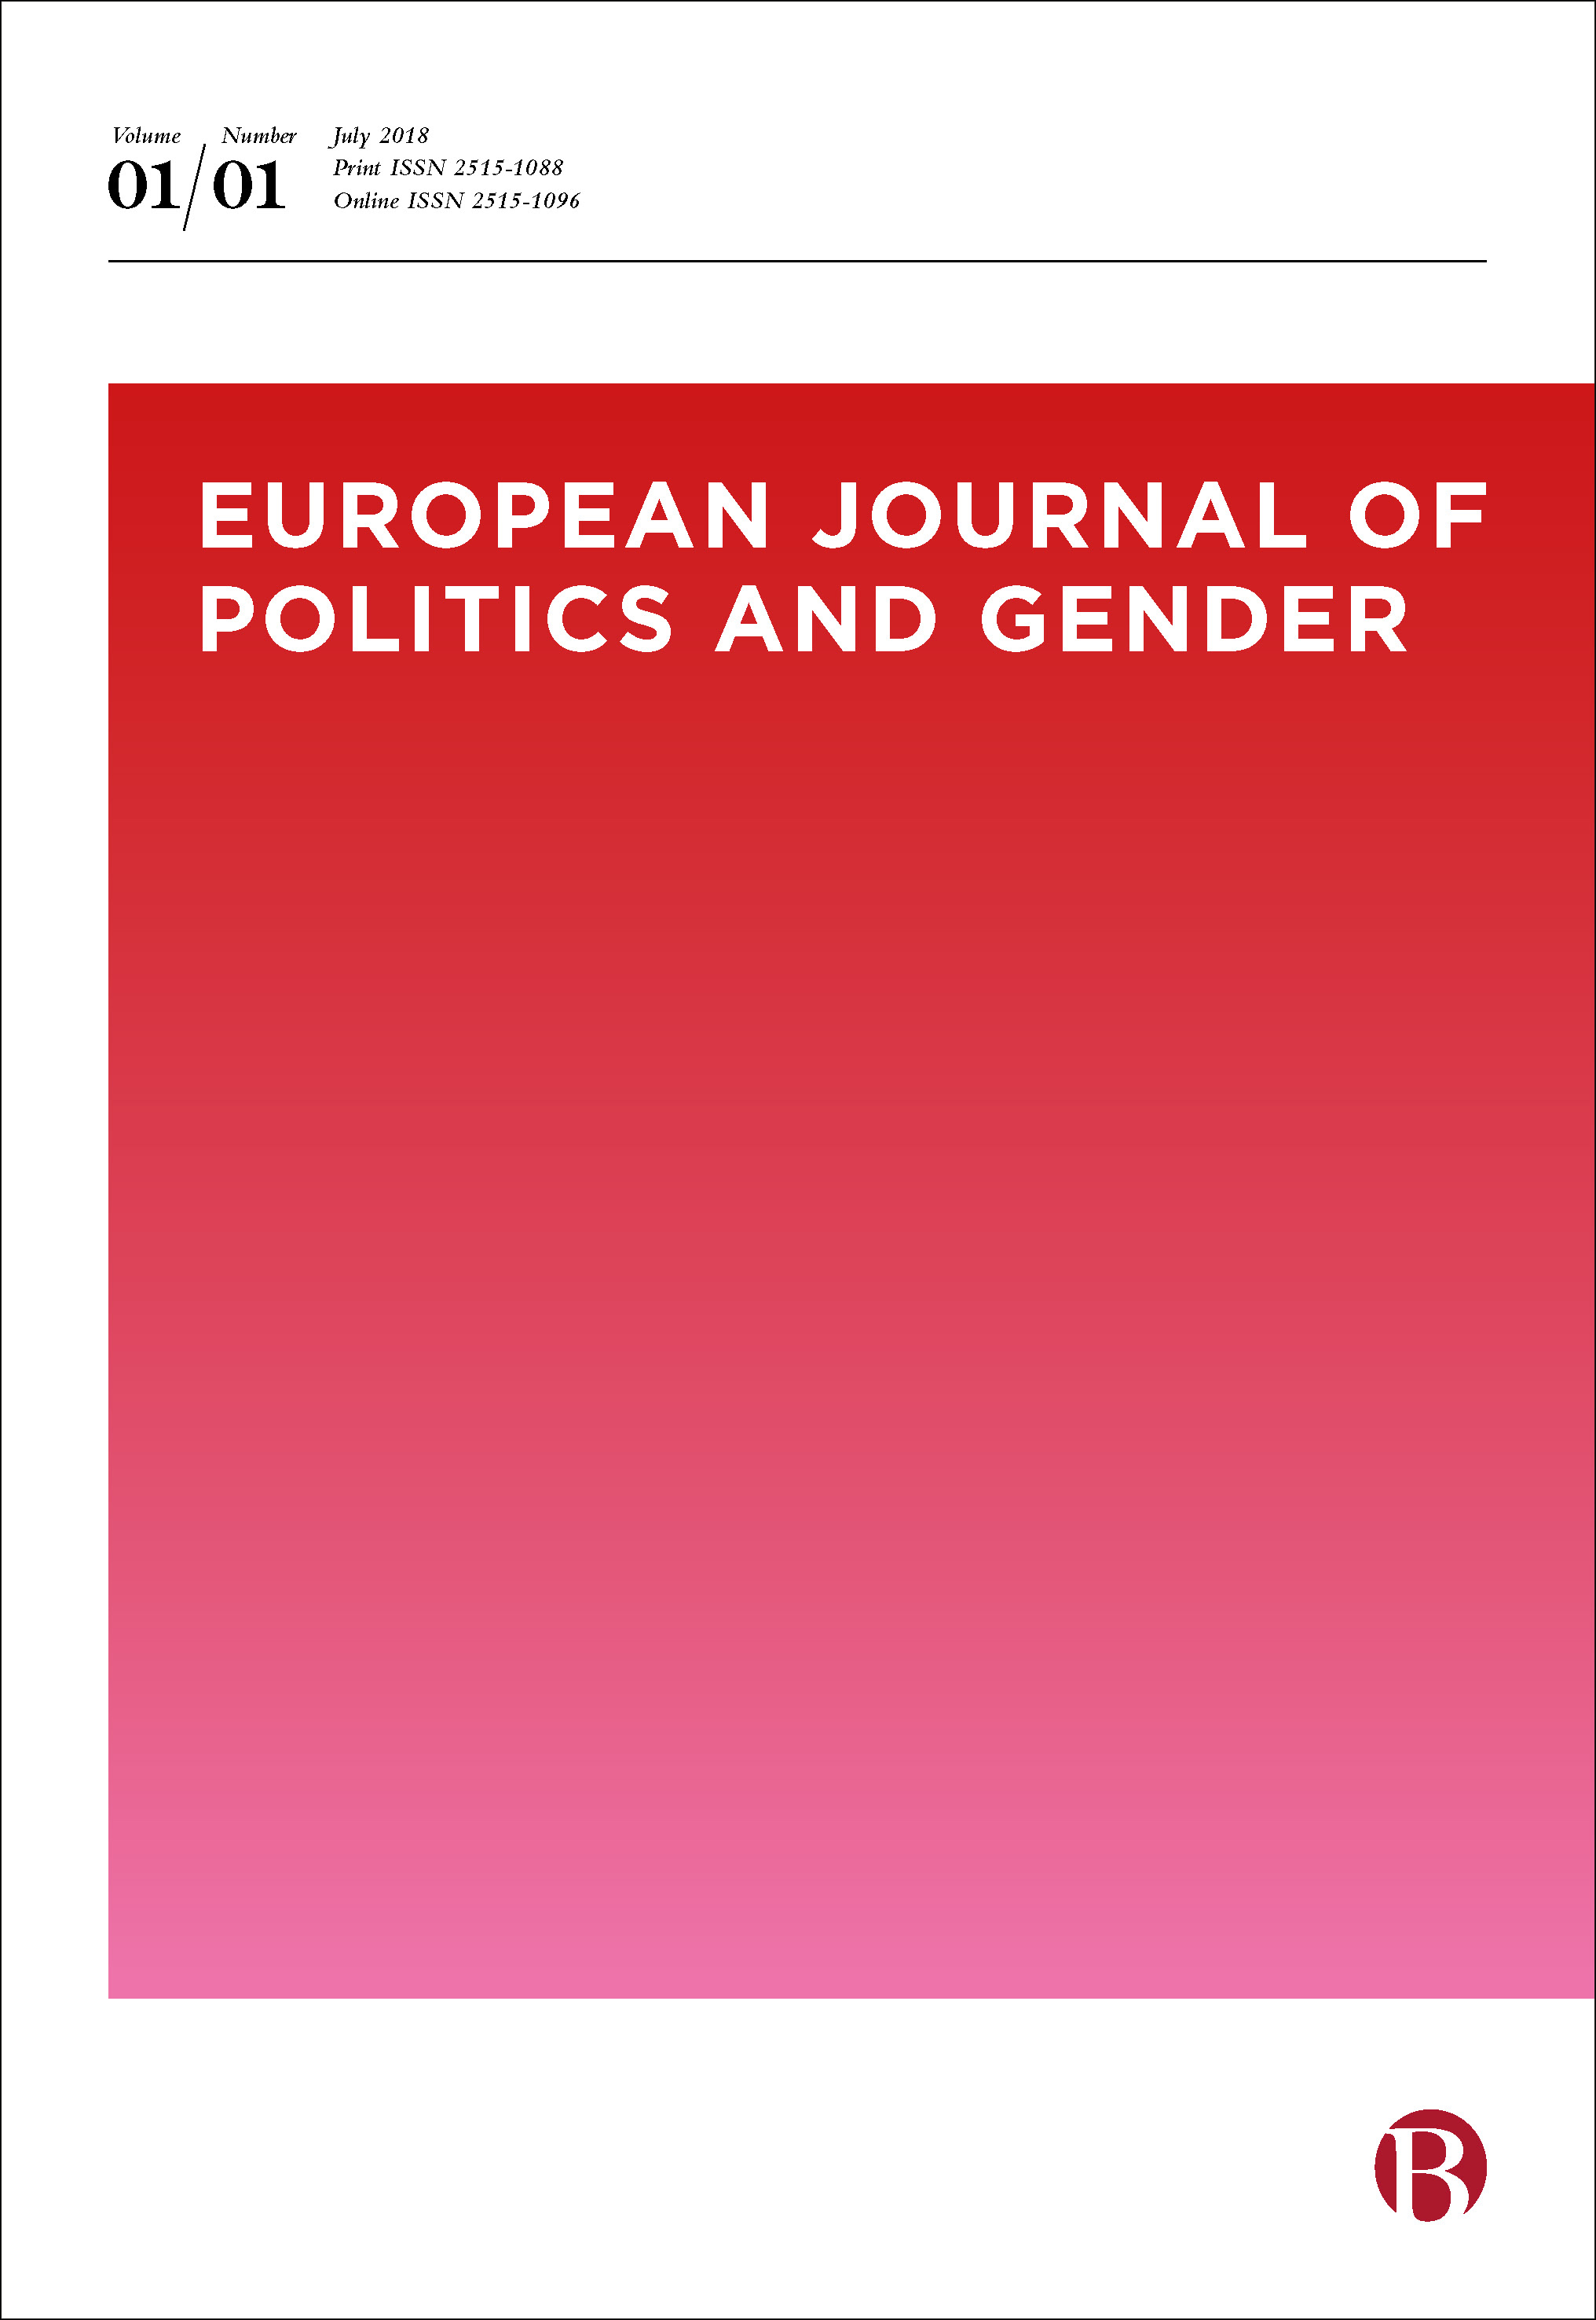 European journal of politics and gender cover